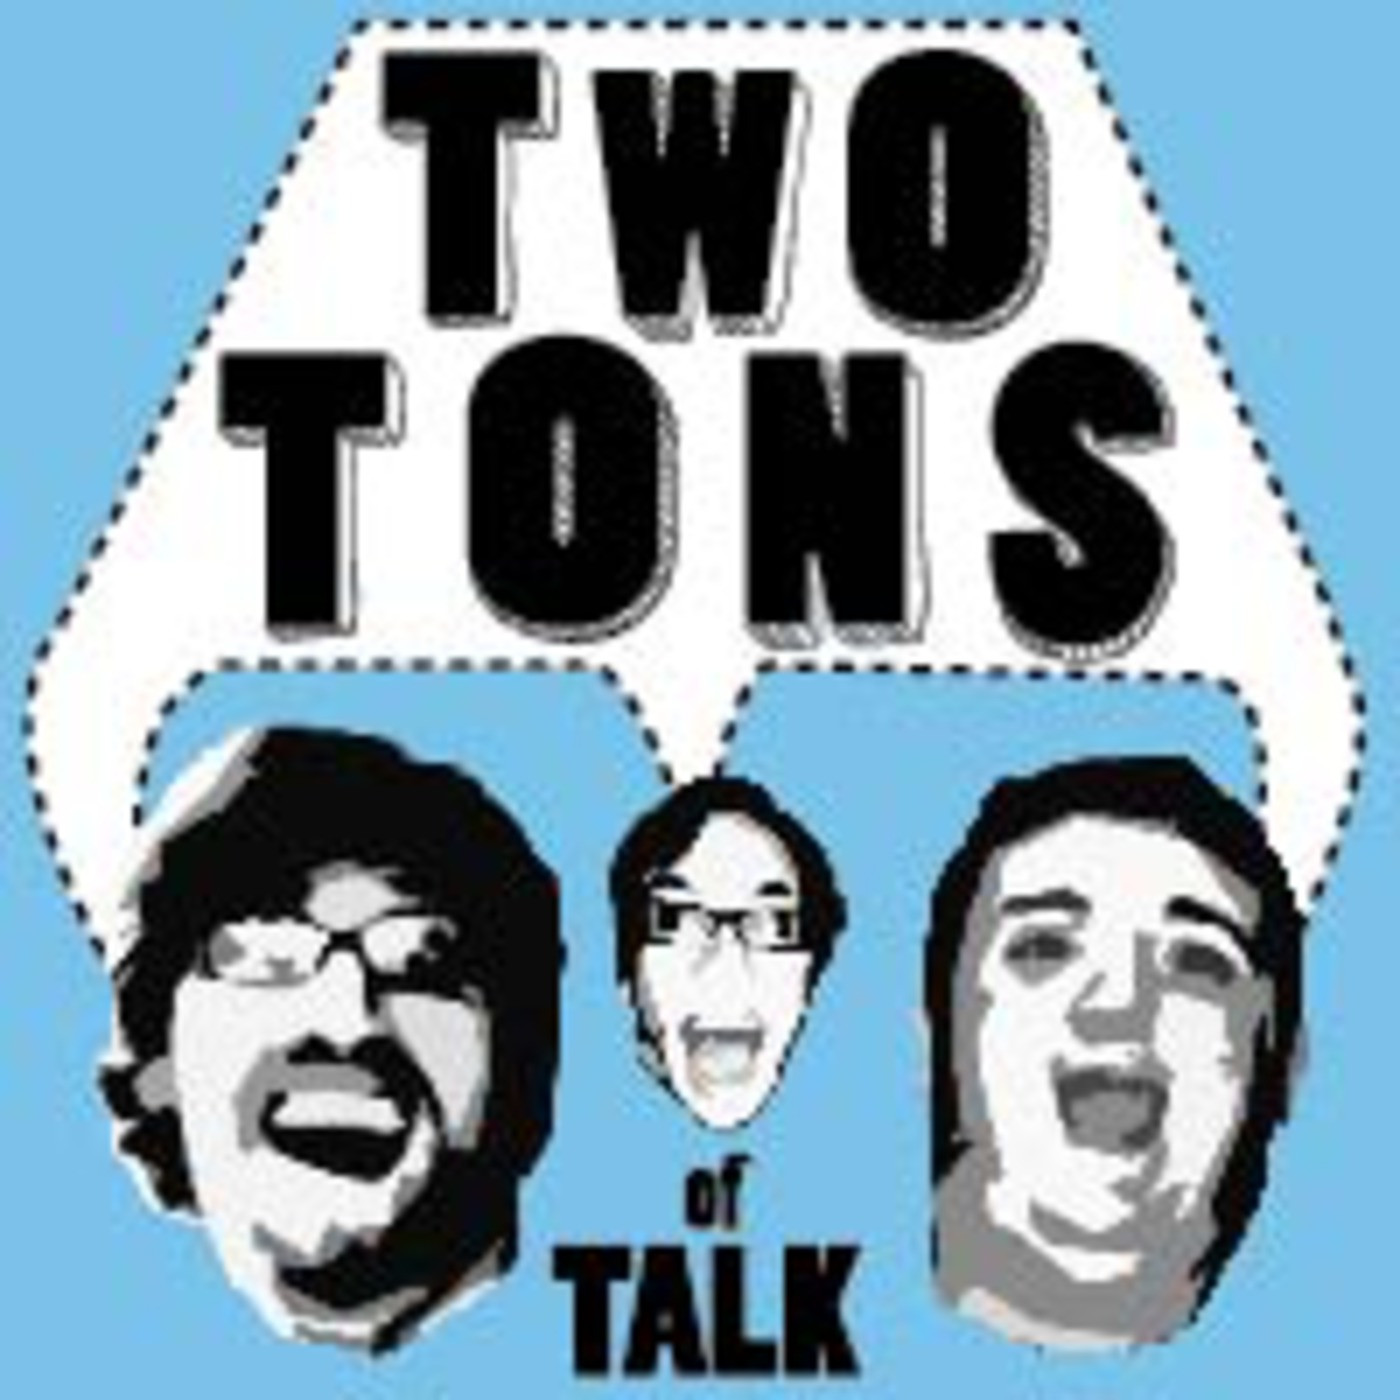 Two Tons Of Talk